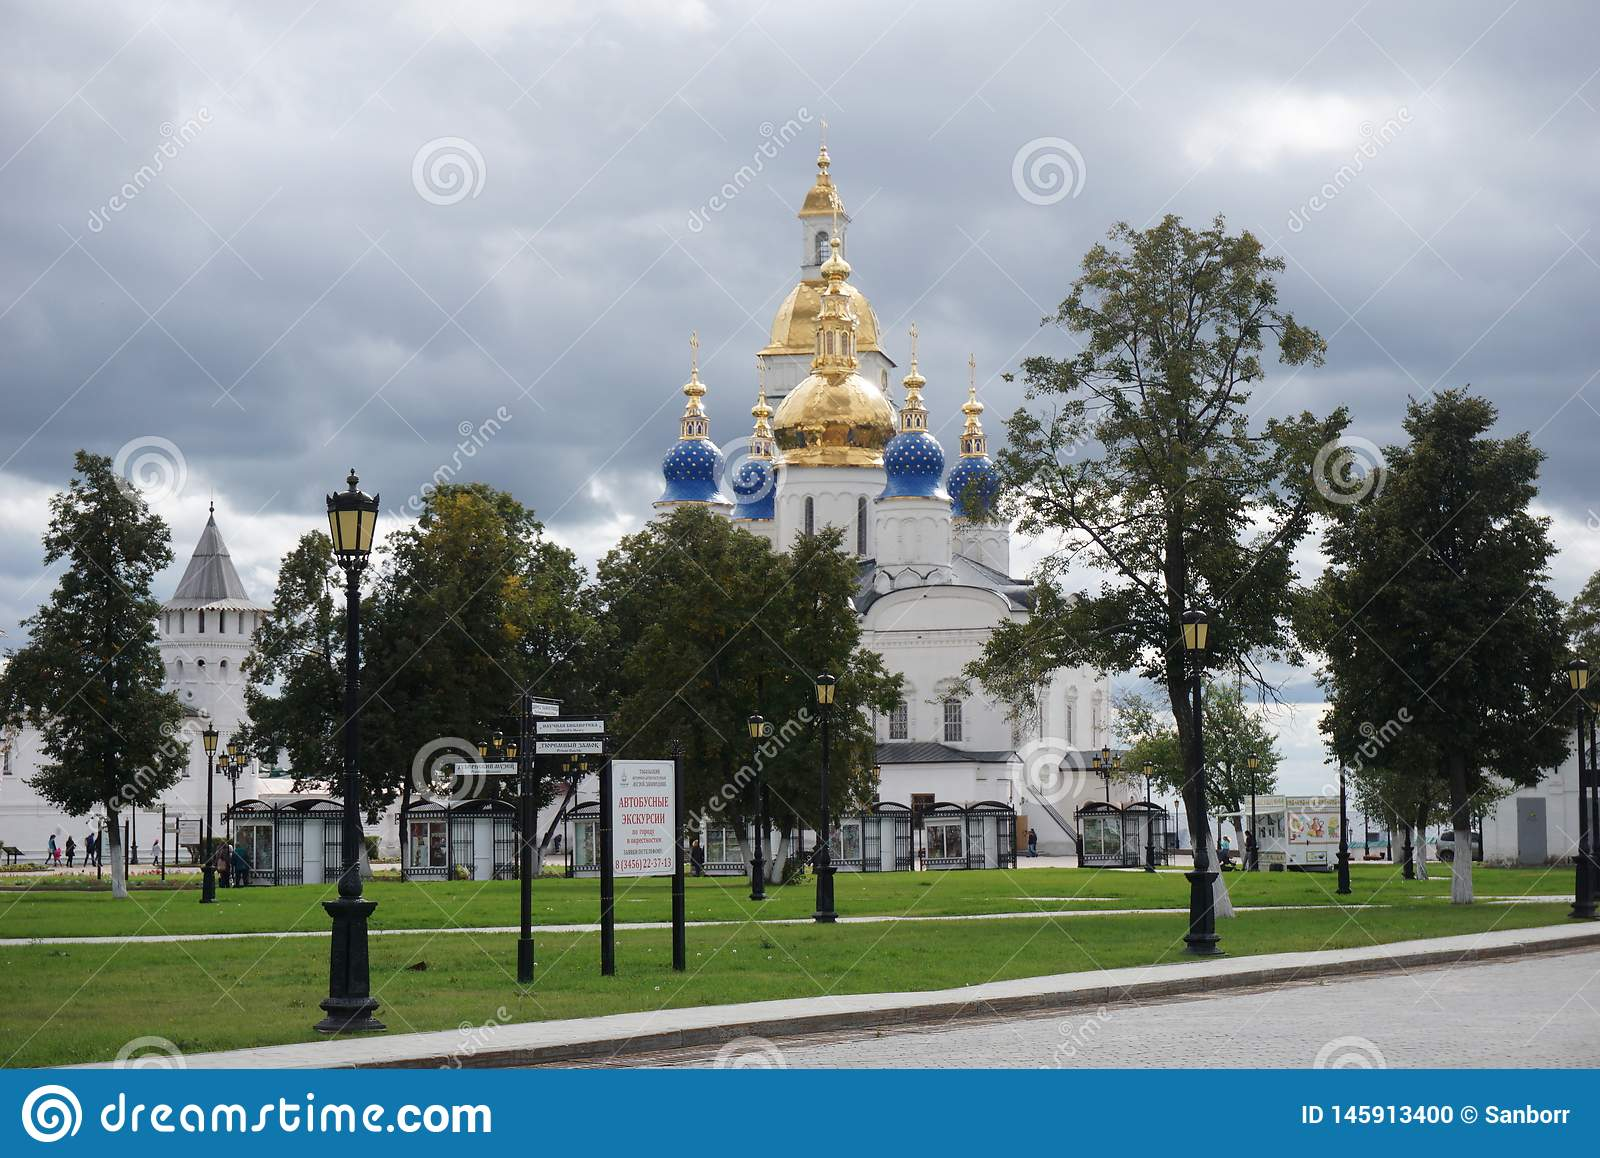 Tobolsk, Russia, 11.09.2016. Christian Church on the background of green trees and blue sky with clouds. The concept of religion